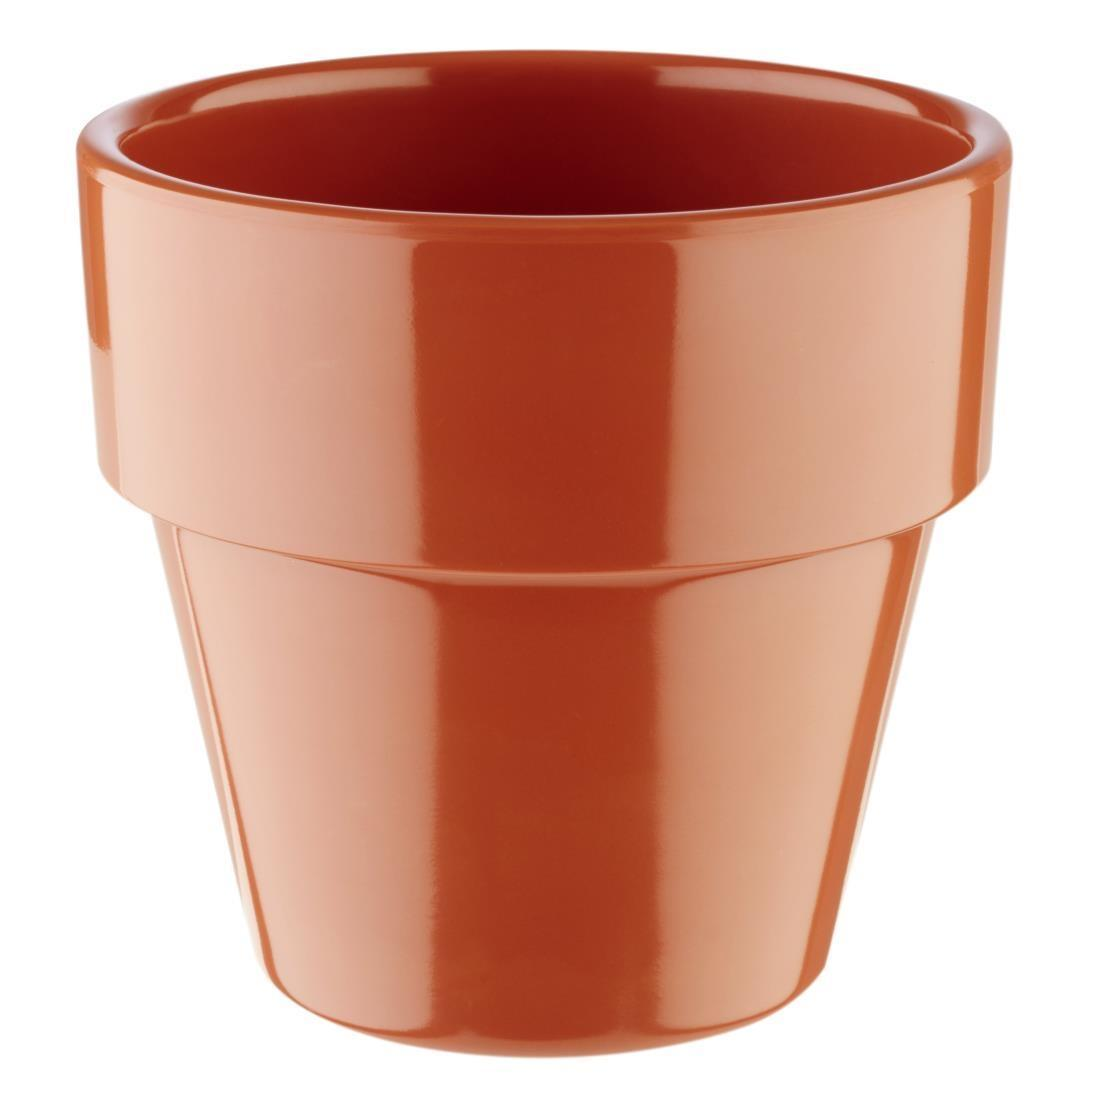 APS Flowerpot 90mm Terracotta - Each - HC741